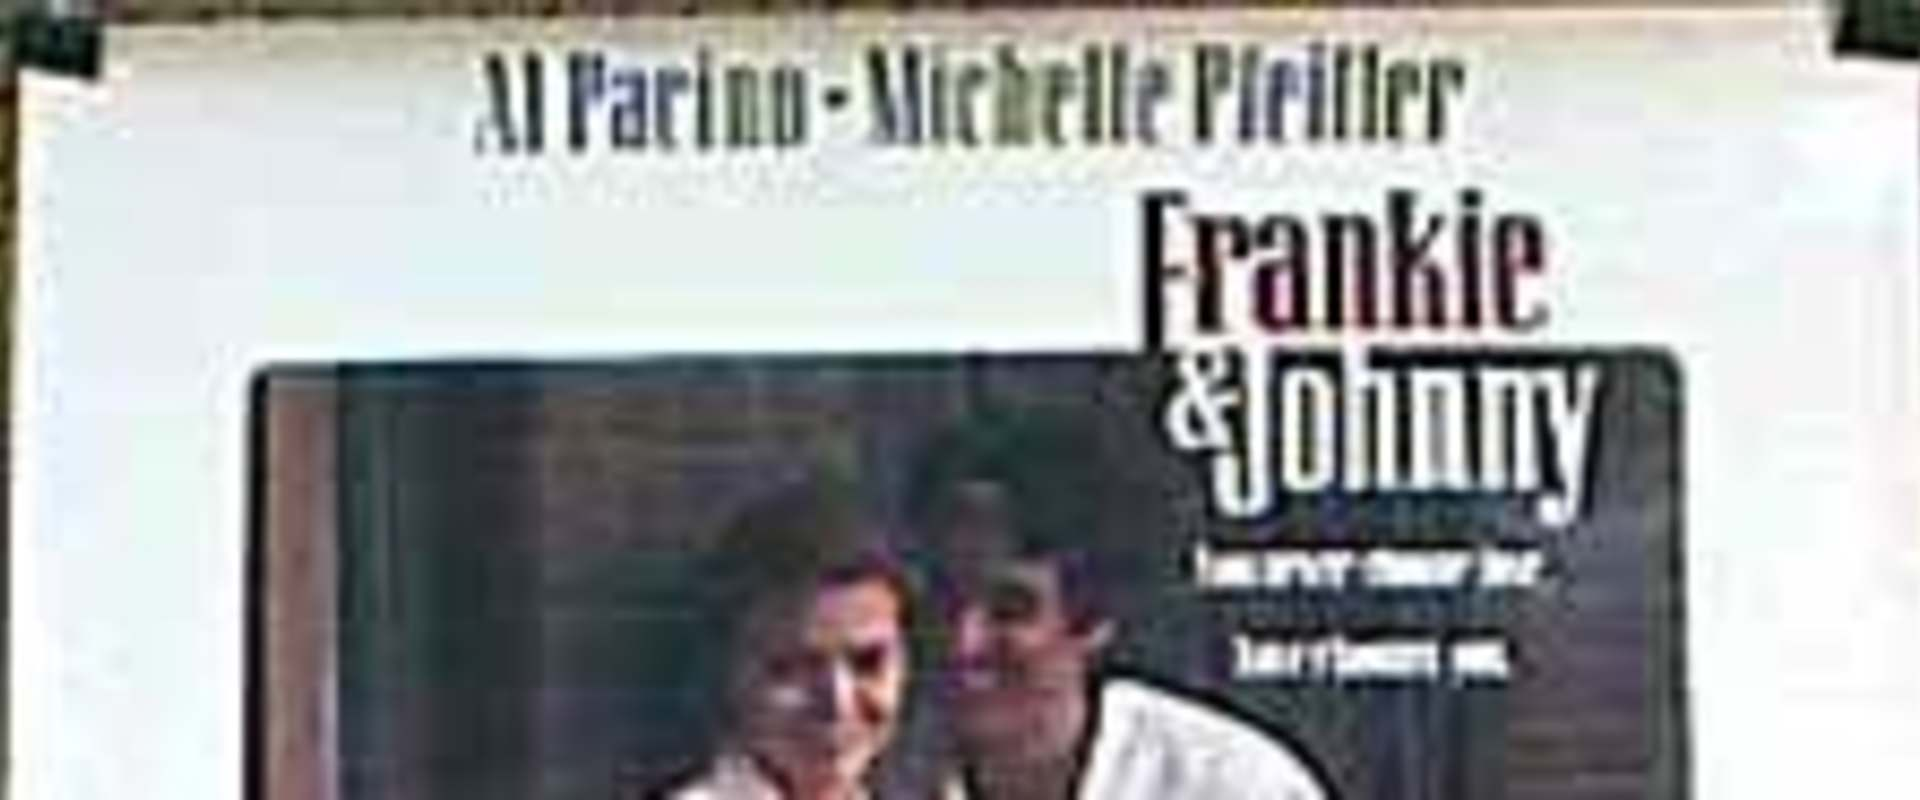 Frankie and Johnny background 1